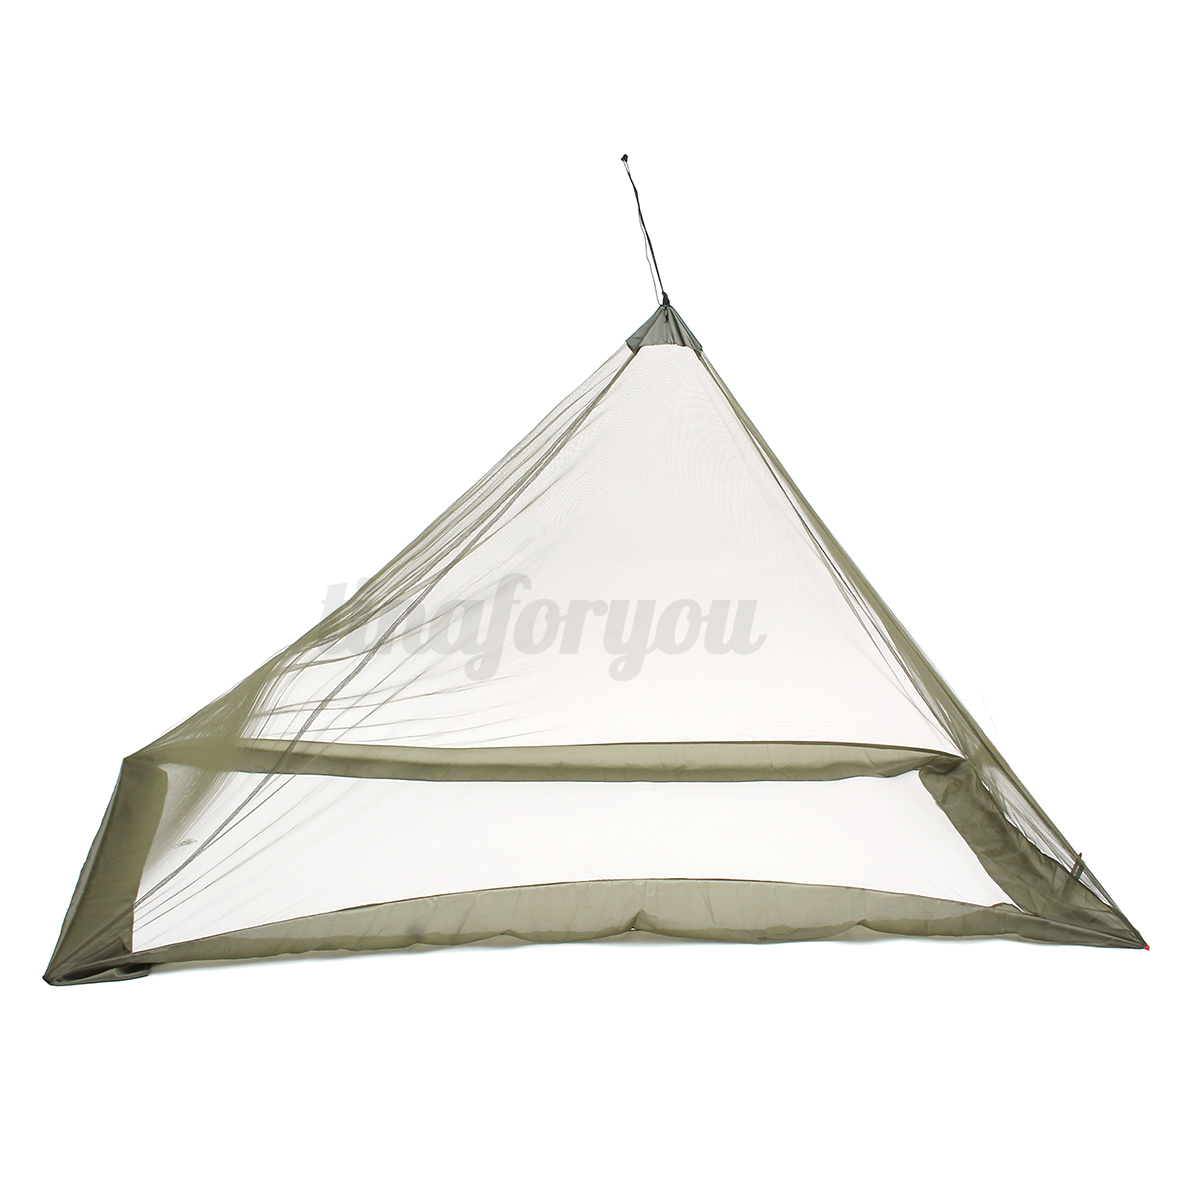 Lightweight compact tent mosquito mesh net canopy for for Single bed tent canopy